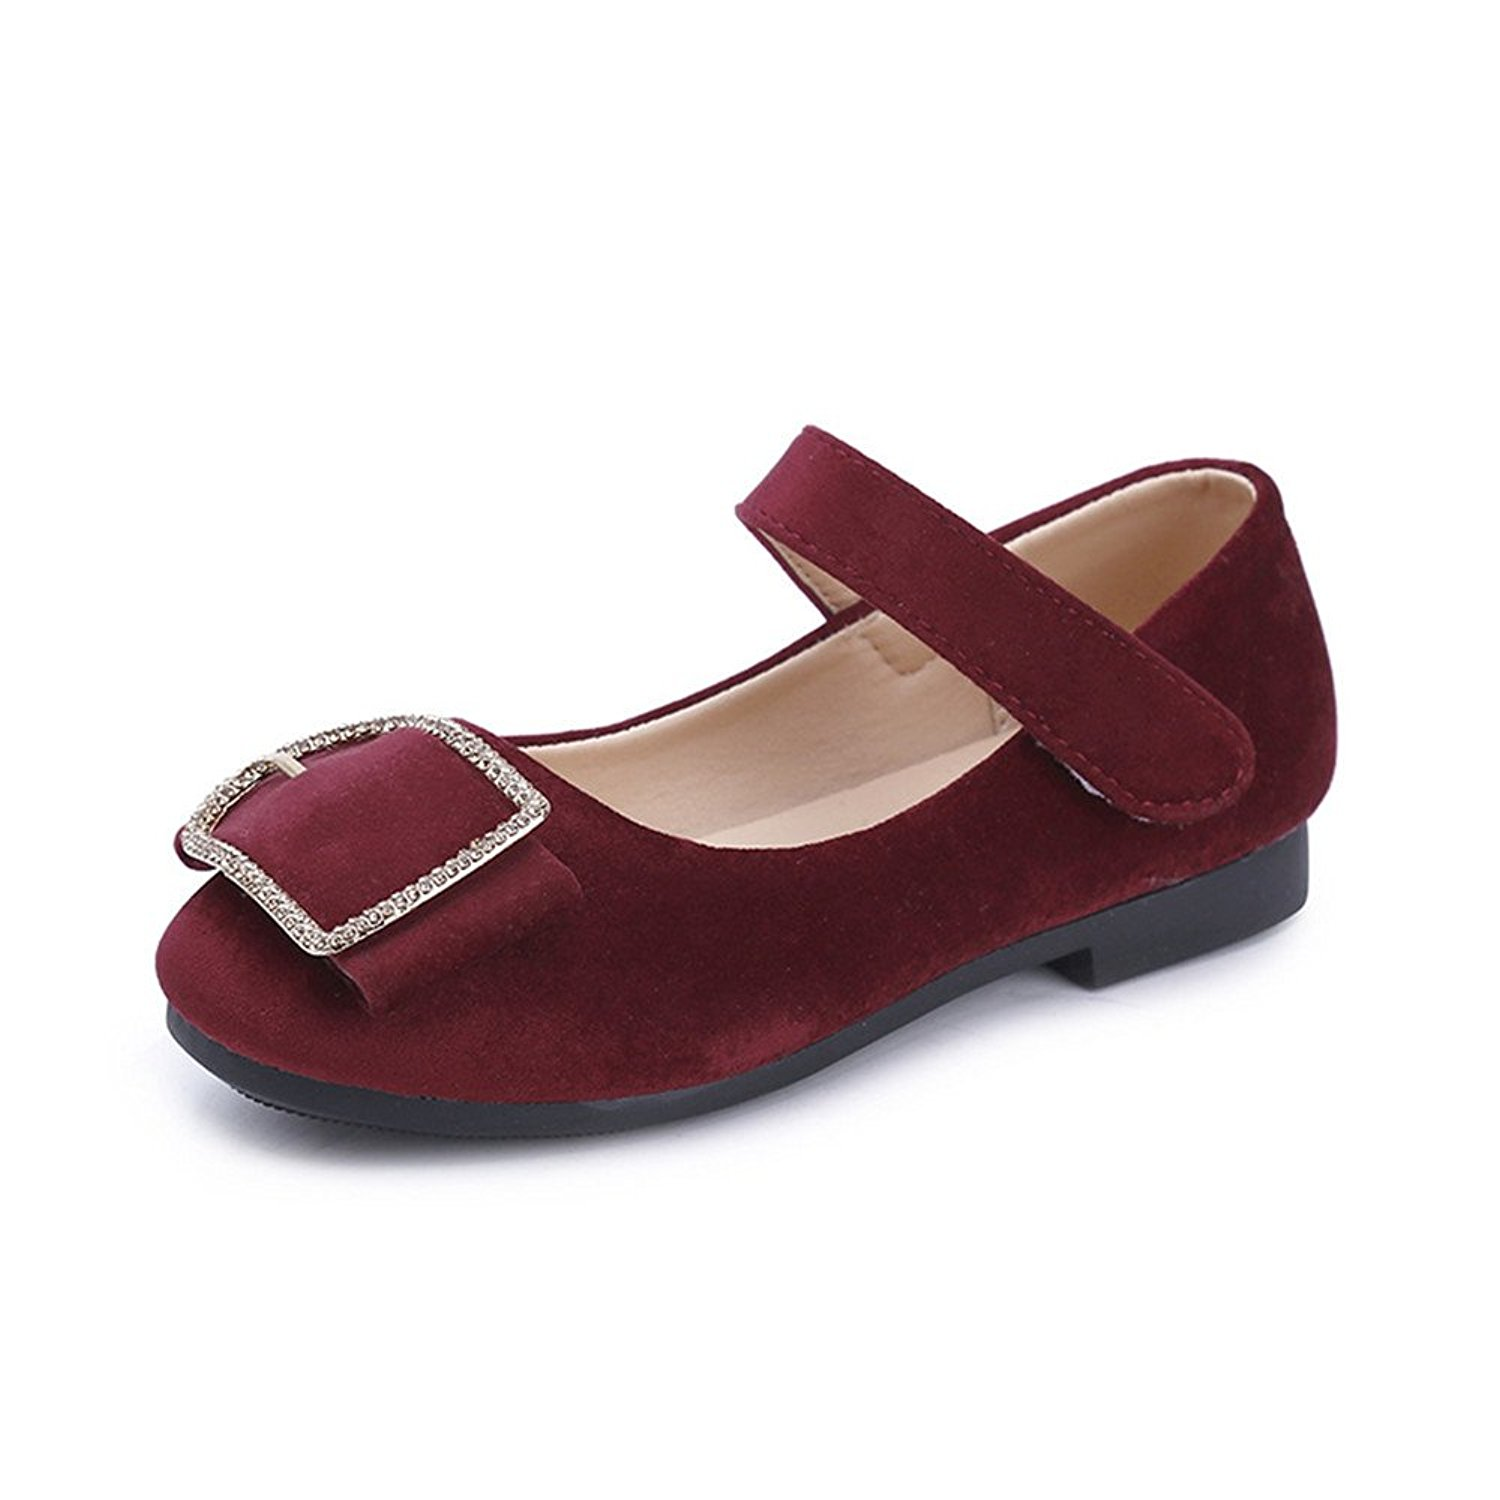 Kids Flats For Girls Shoes Sweet Girl Flower Leather Flat Shoes Princess Shoes For Children Flat Shoes